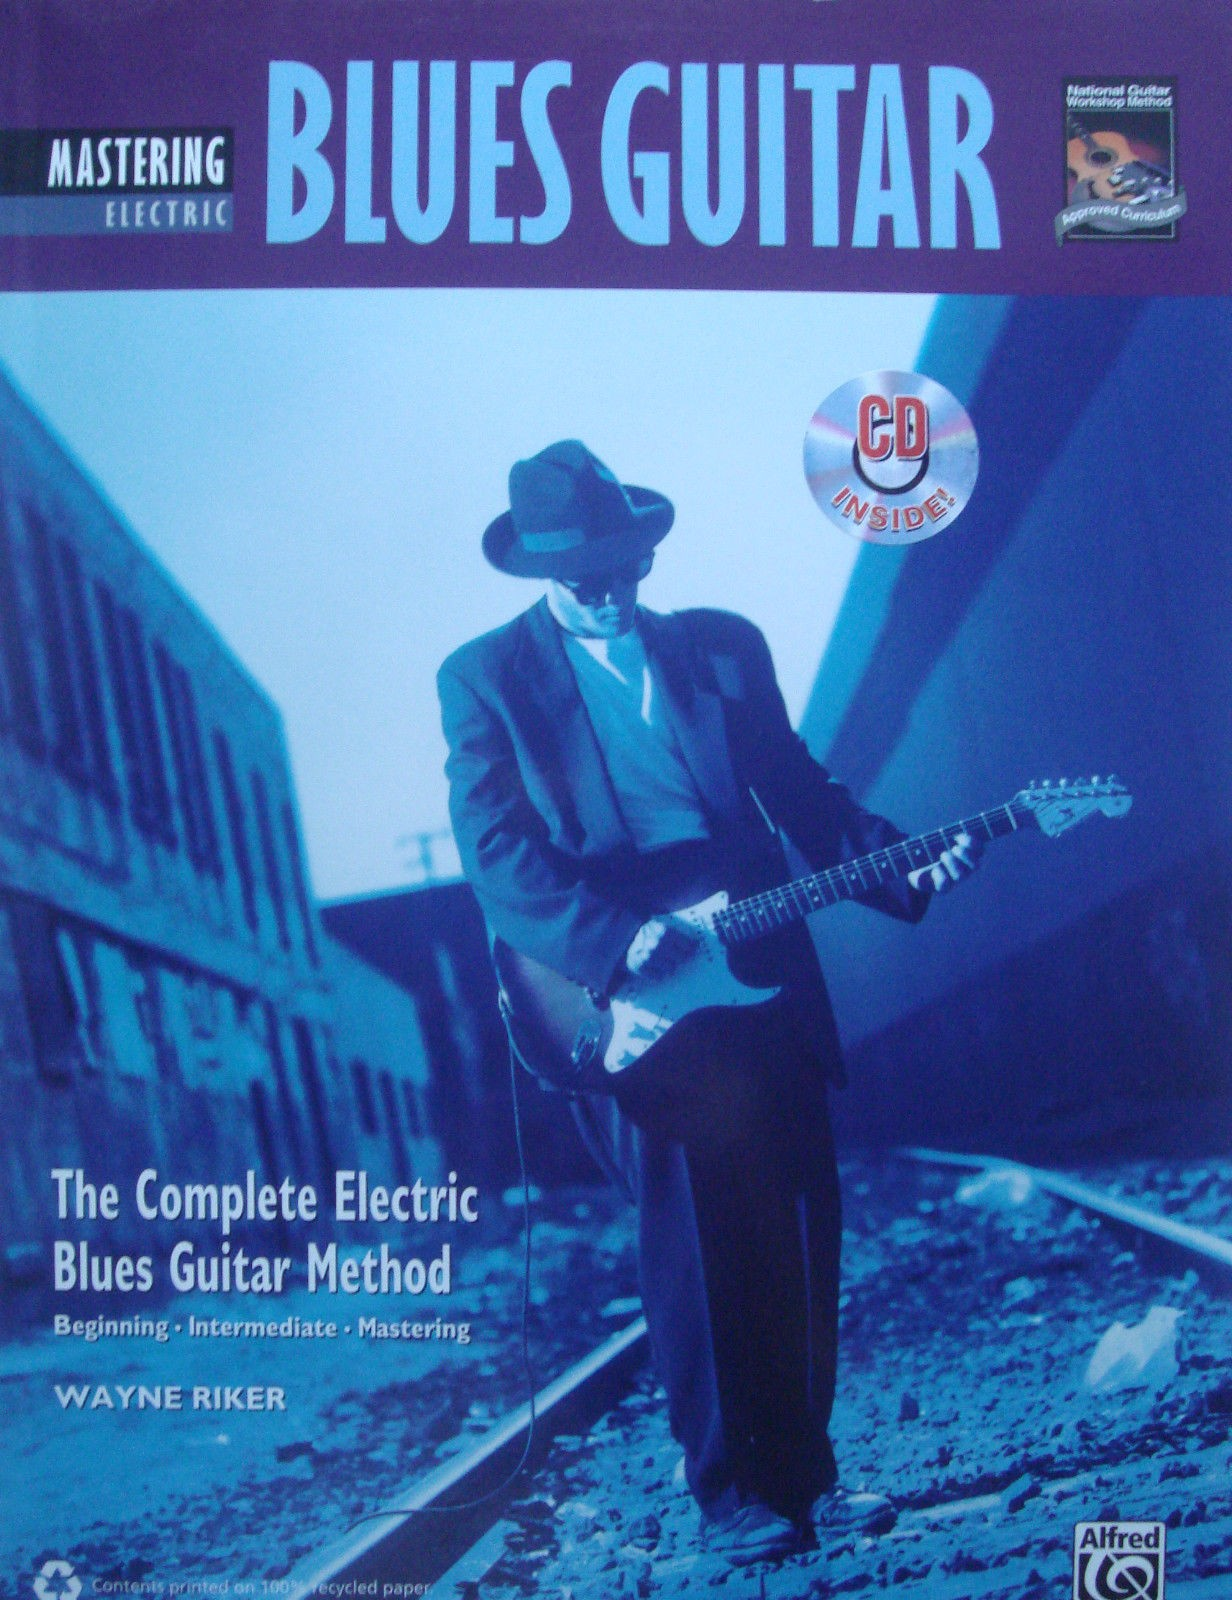 Mastering Electric Blues Guitar Book & CD The Complete Method Wayne Riker B35